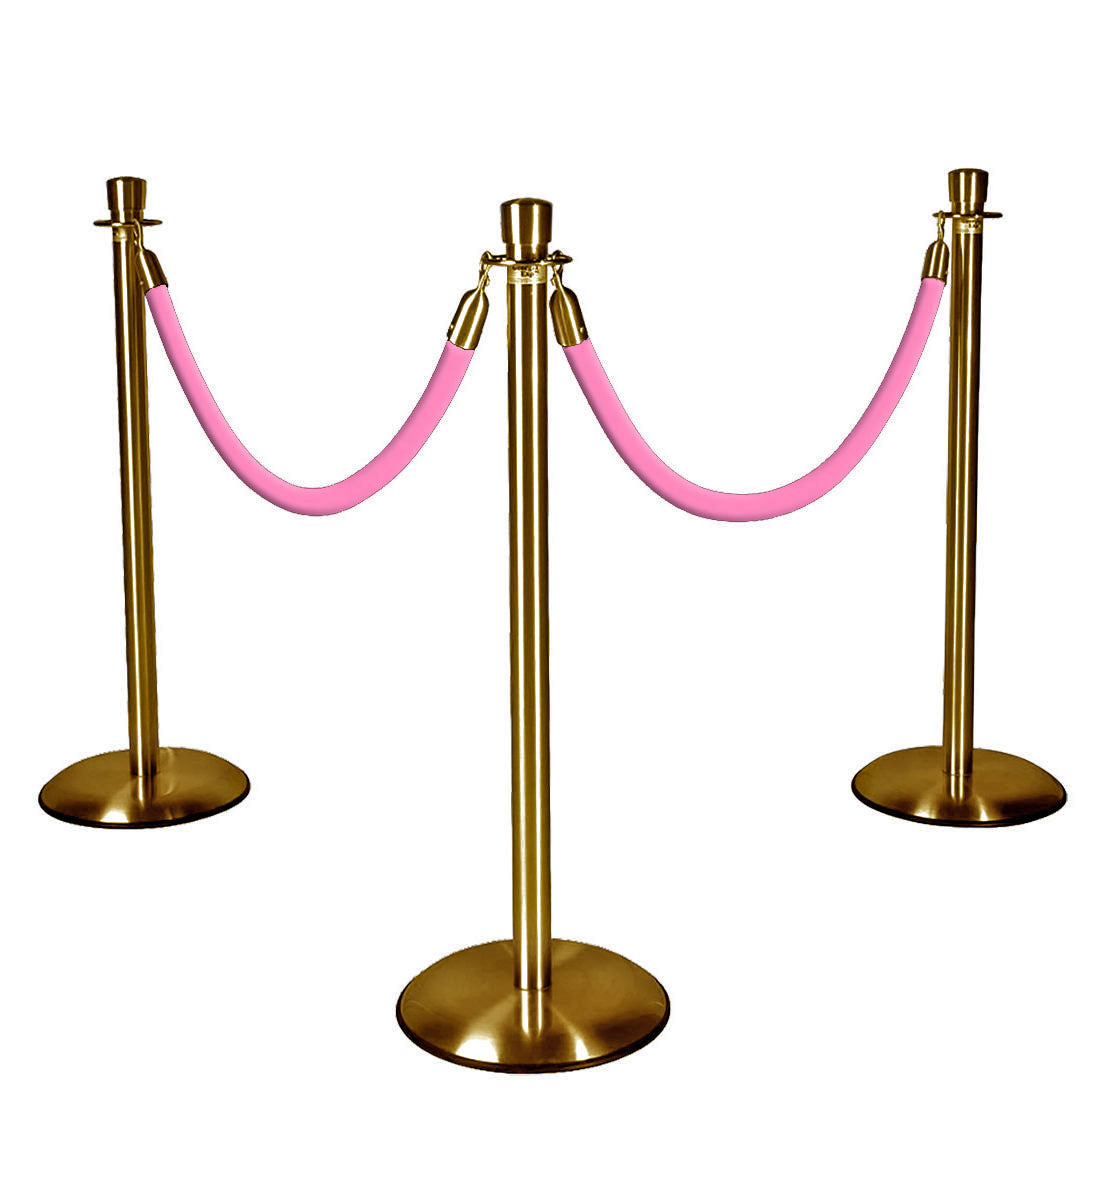 Gold Stanchions with Pink Ropes